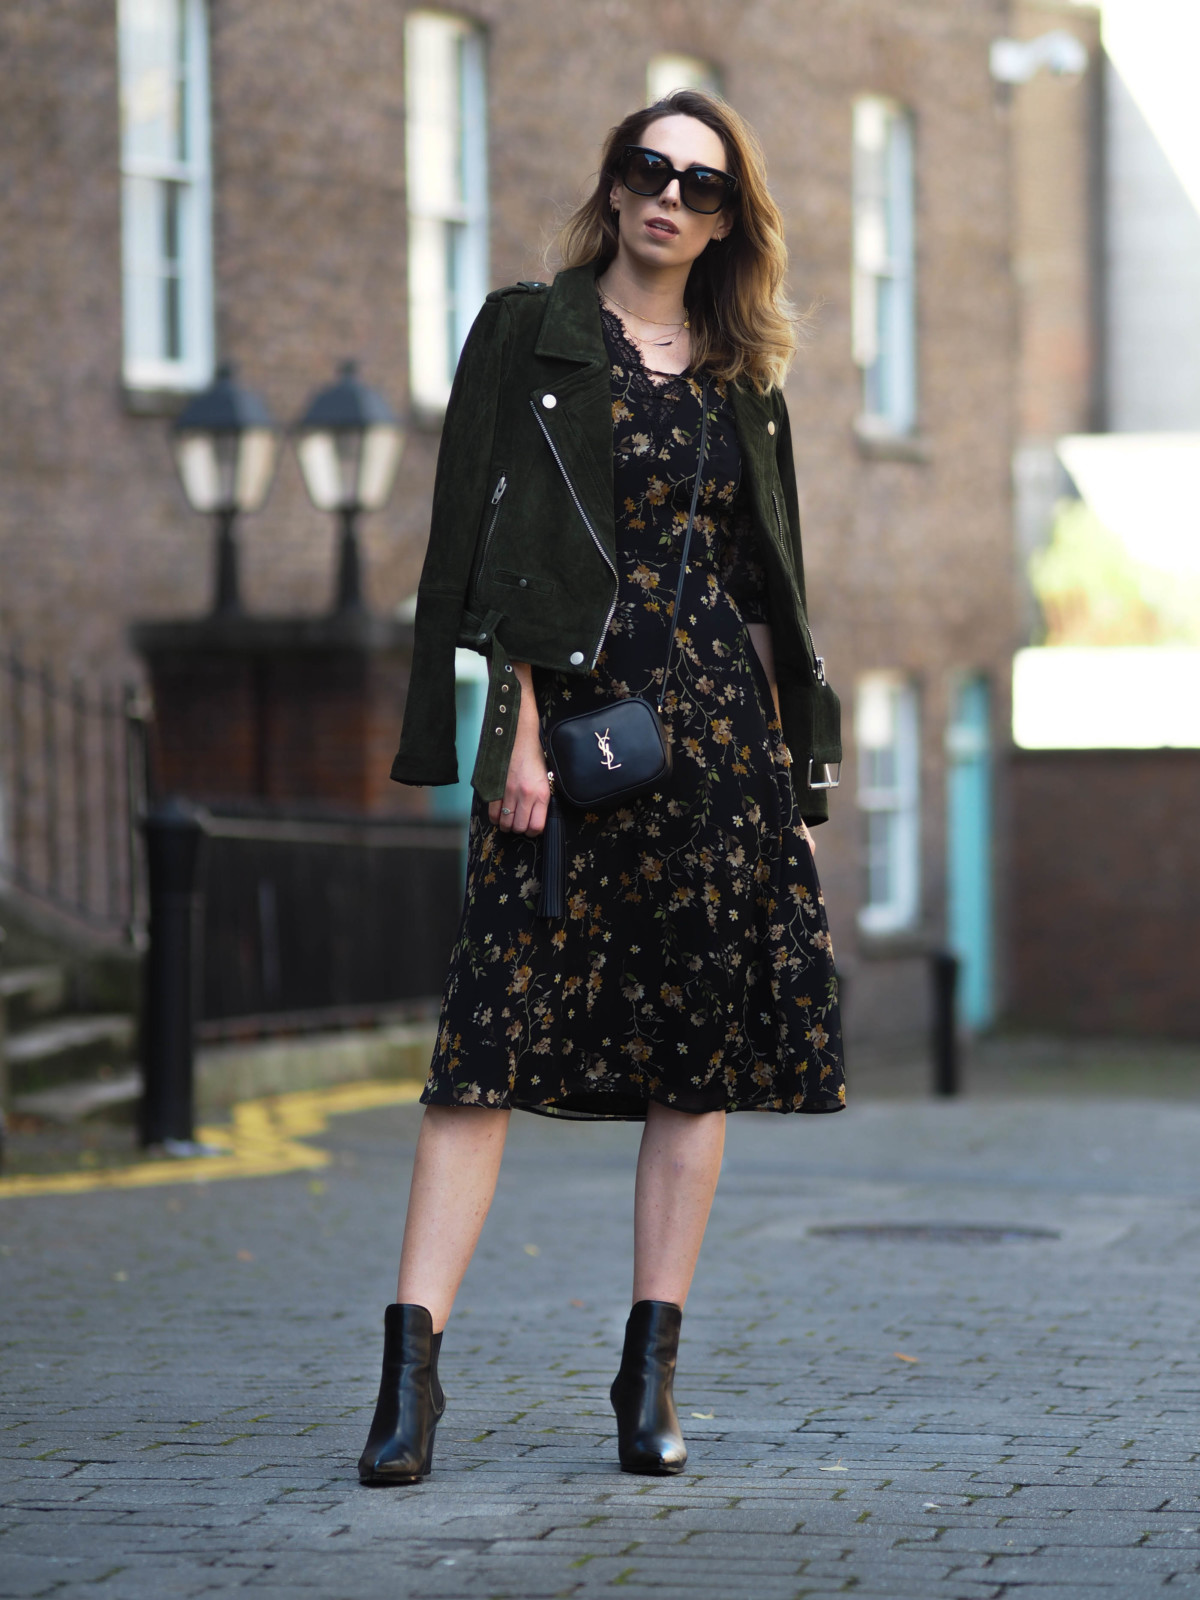 A/W Styling Hack: How to wear Autumn Florals